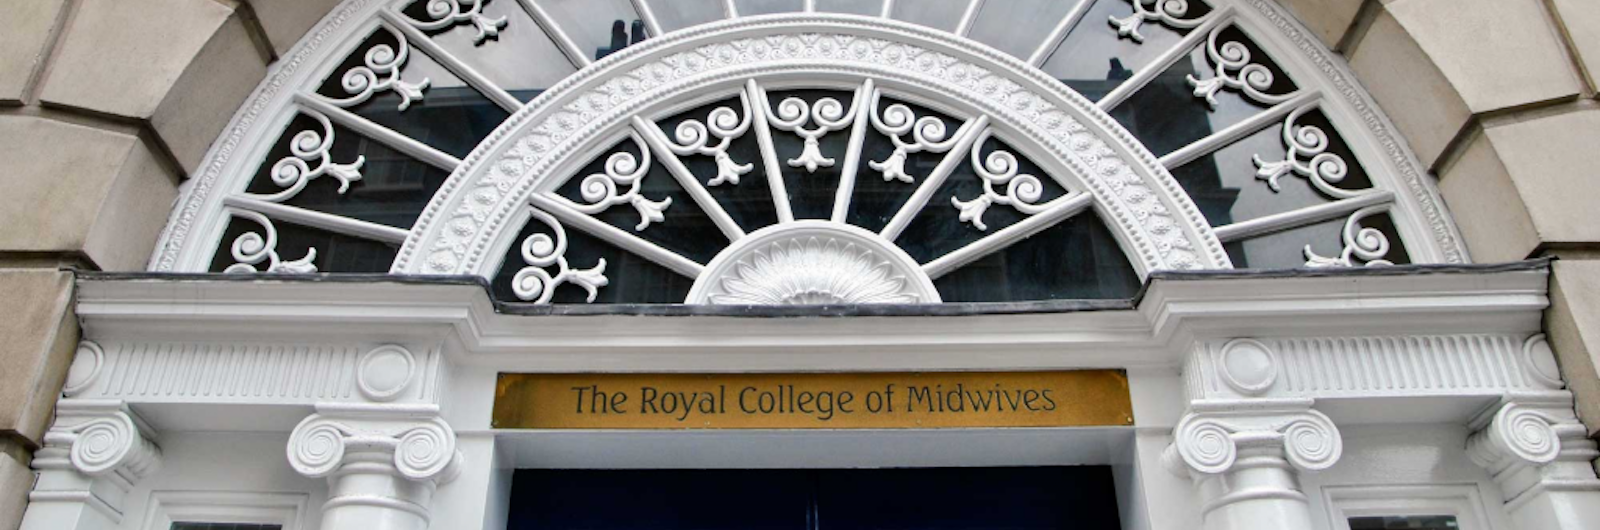 RCM London Headquarters front door